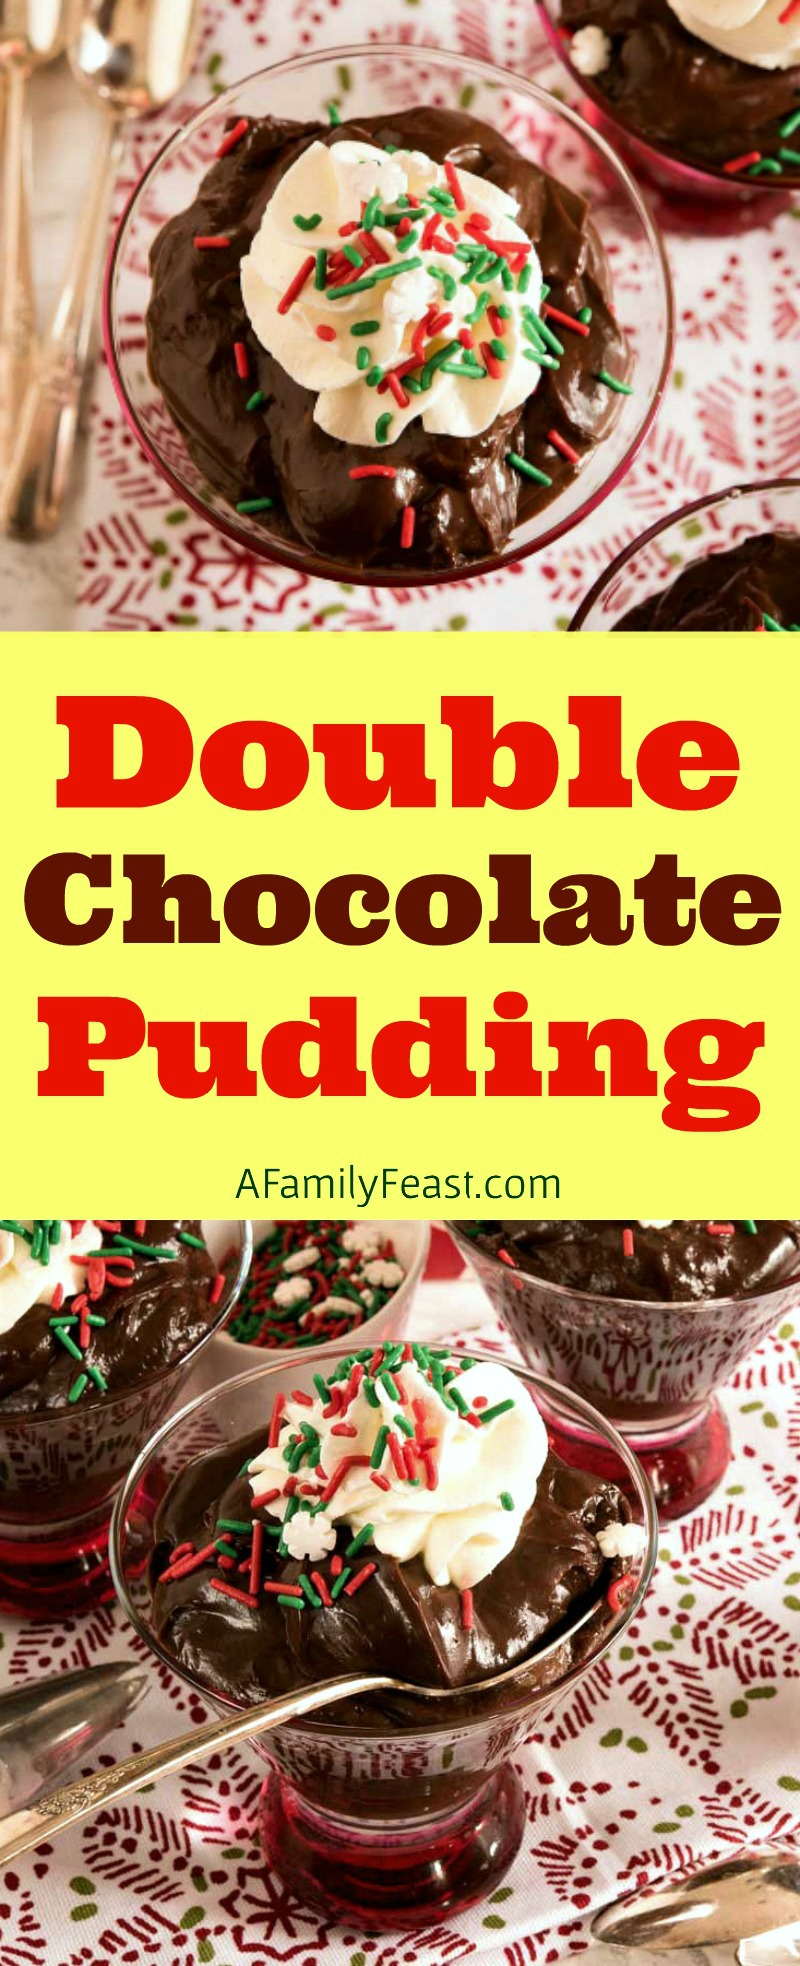 Creamy, delicious Double Chocolate Pudding is easy to make and lusciously delicious! A perfect, homemade chocolate pudding for any special occasion!